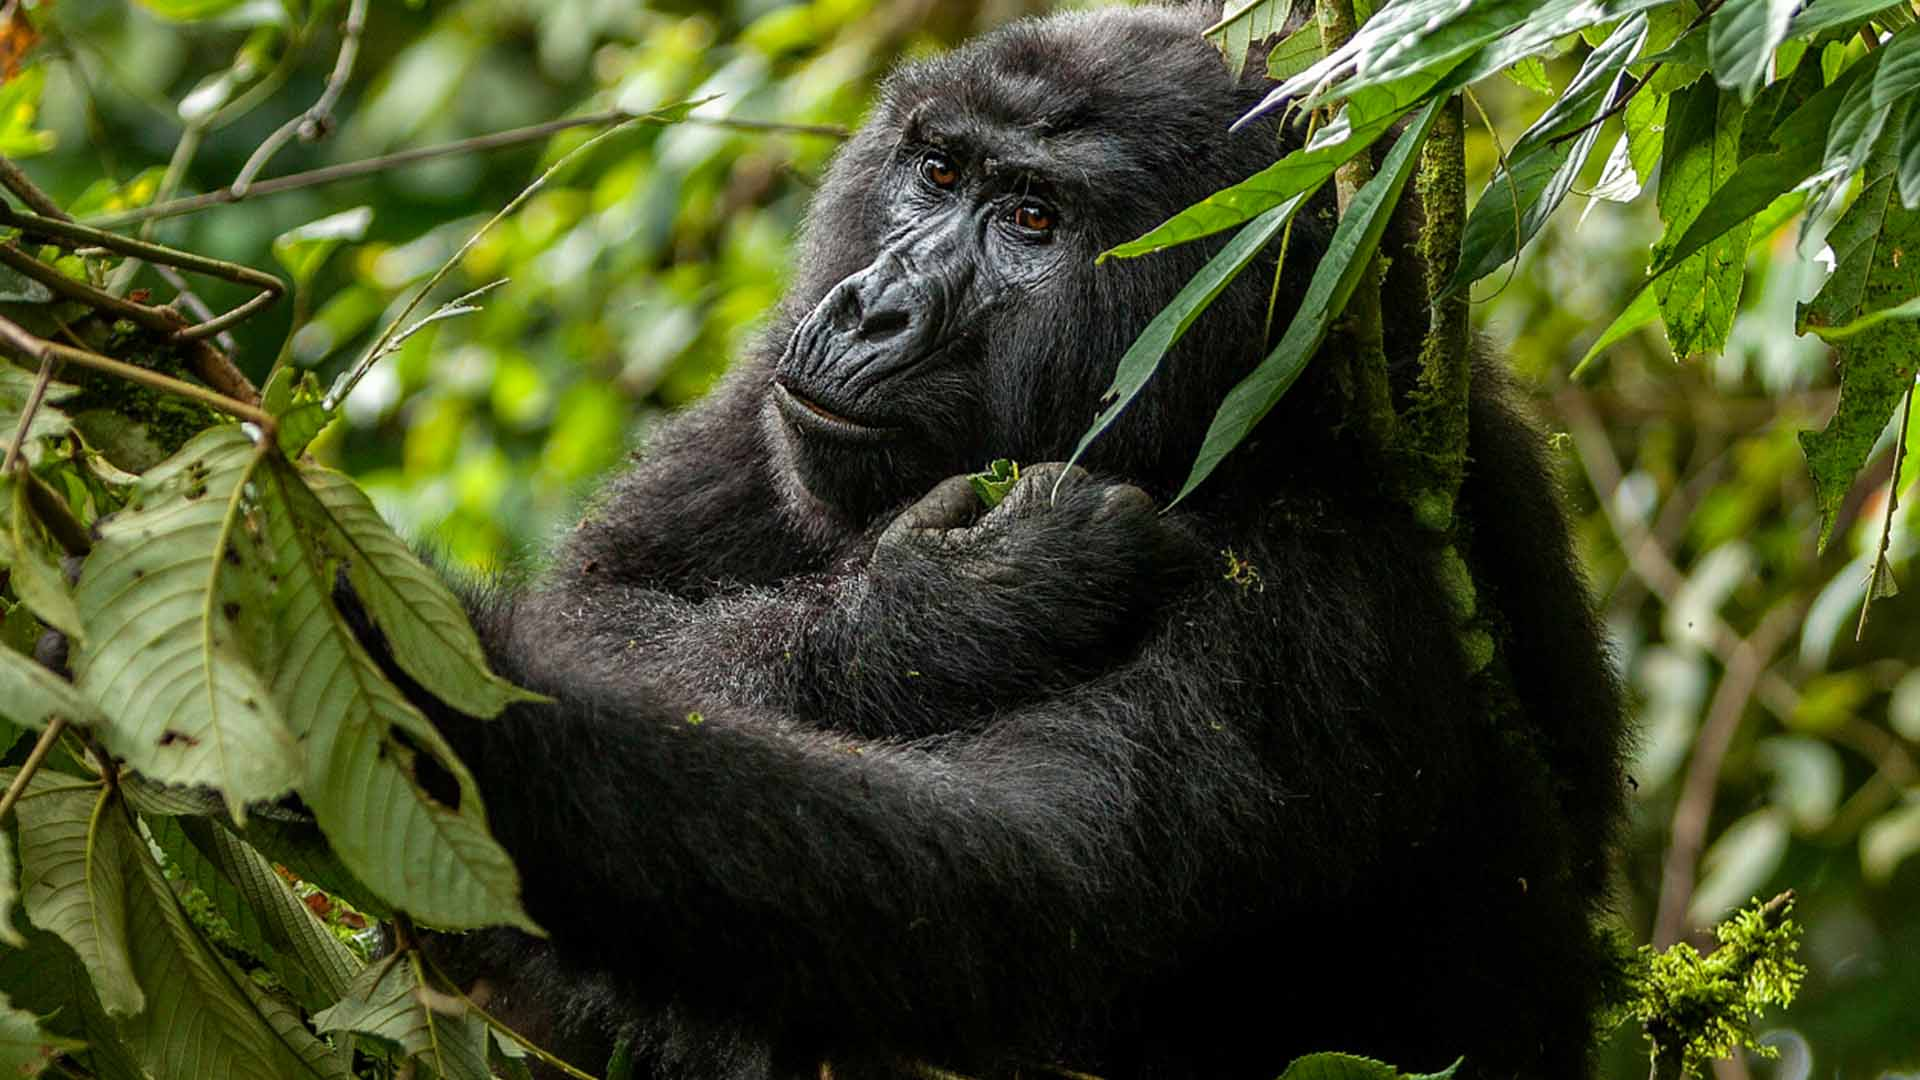 Gorilla and chimp trekking experience compared